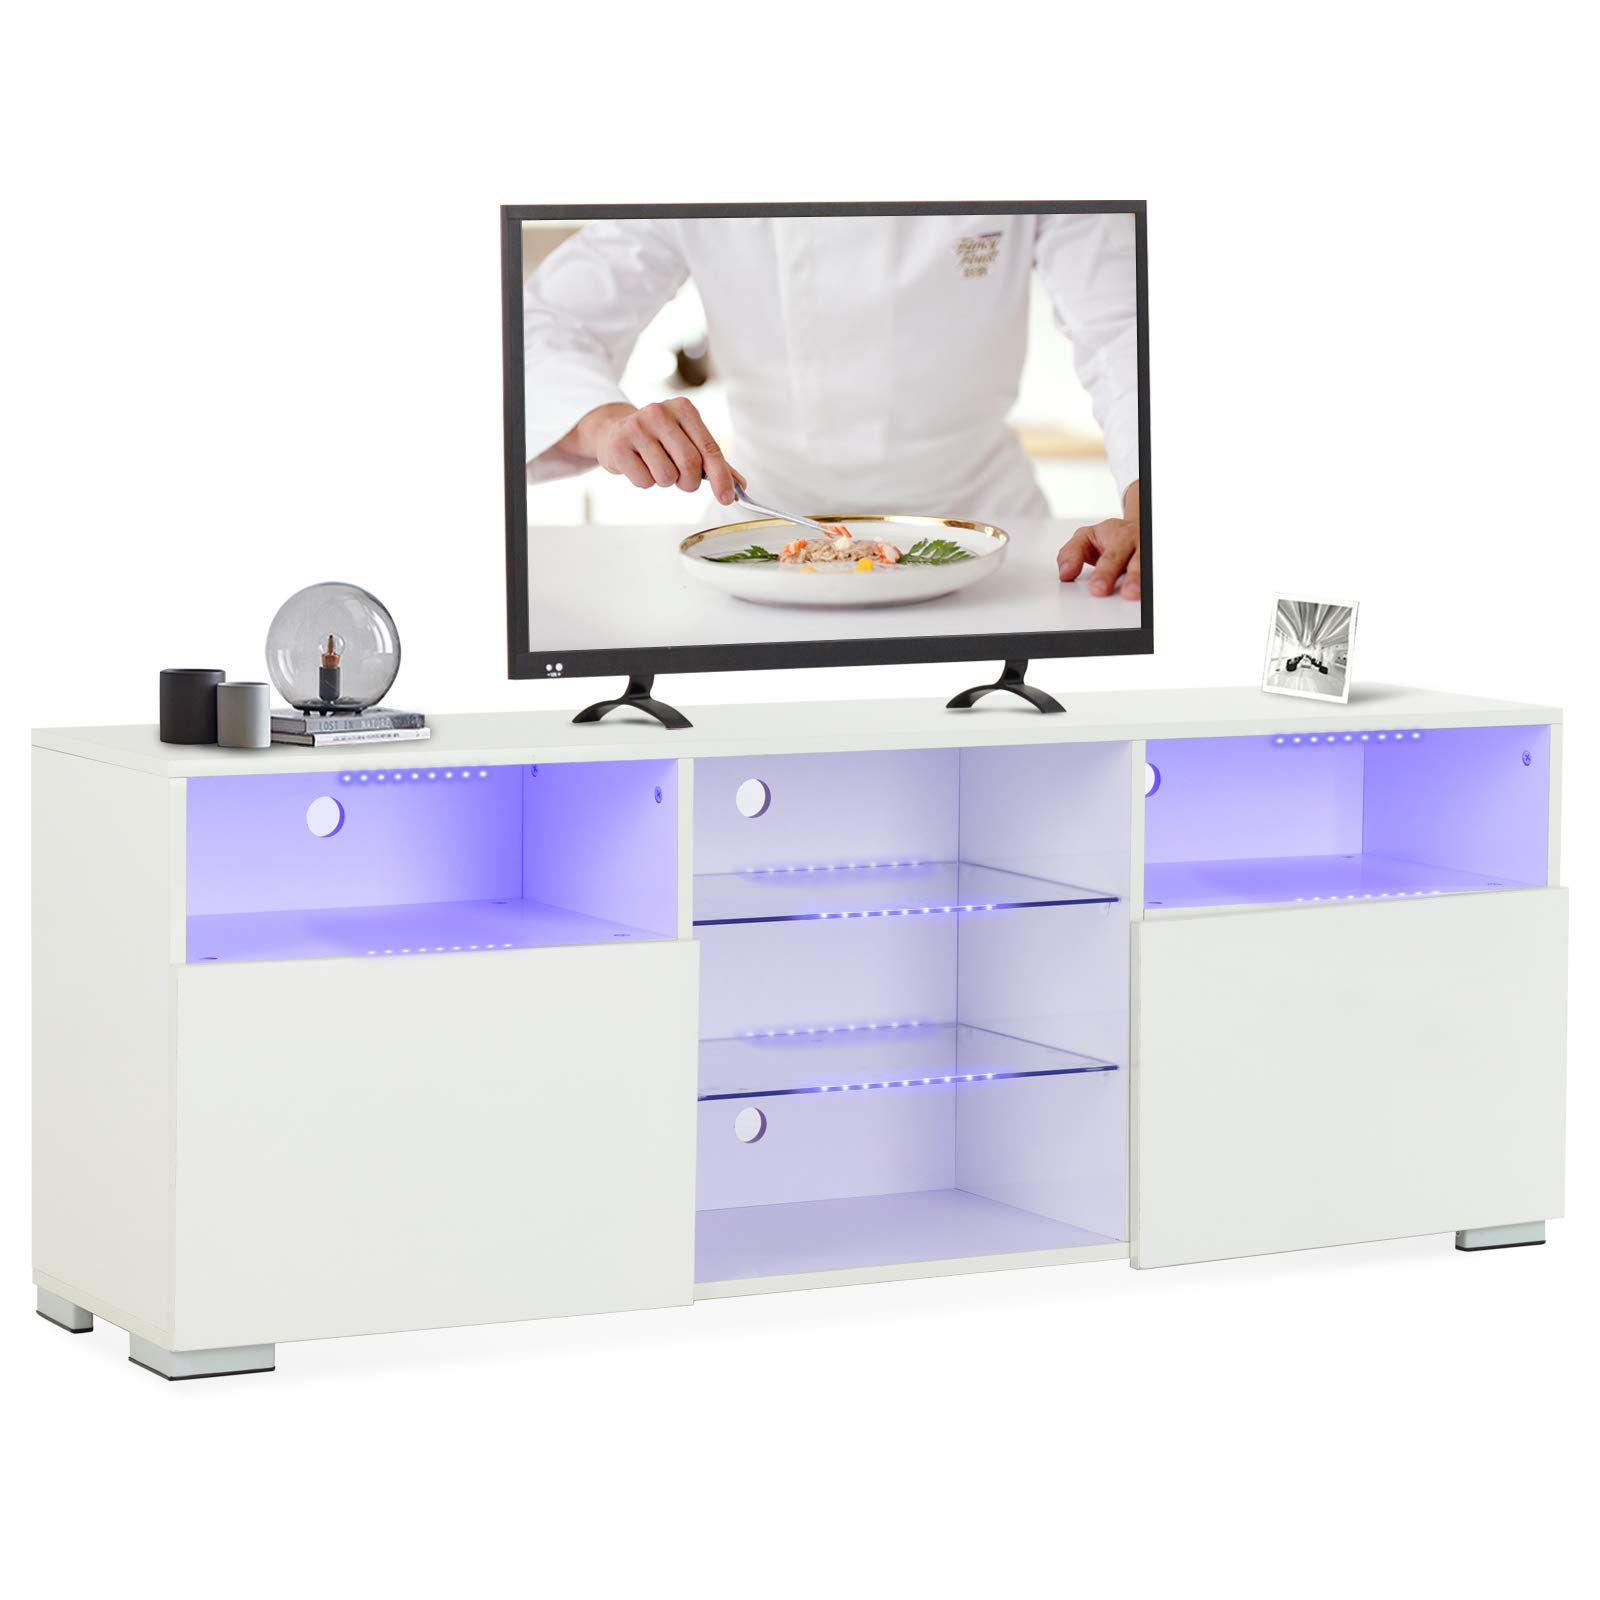 Mecor White TV Stand w/Lights Modern LED TV Stand w/Remote Control High Gloss Media Console for 60 Inch TV Entertainment Center with 3 Layers, 2 Doors and Open Shelf